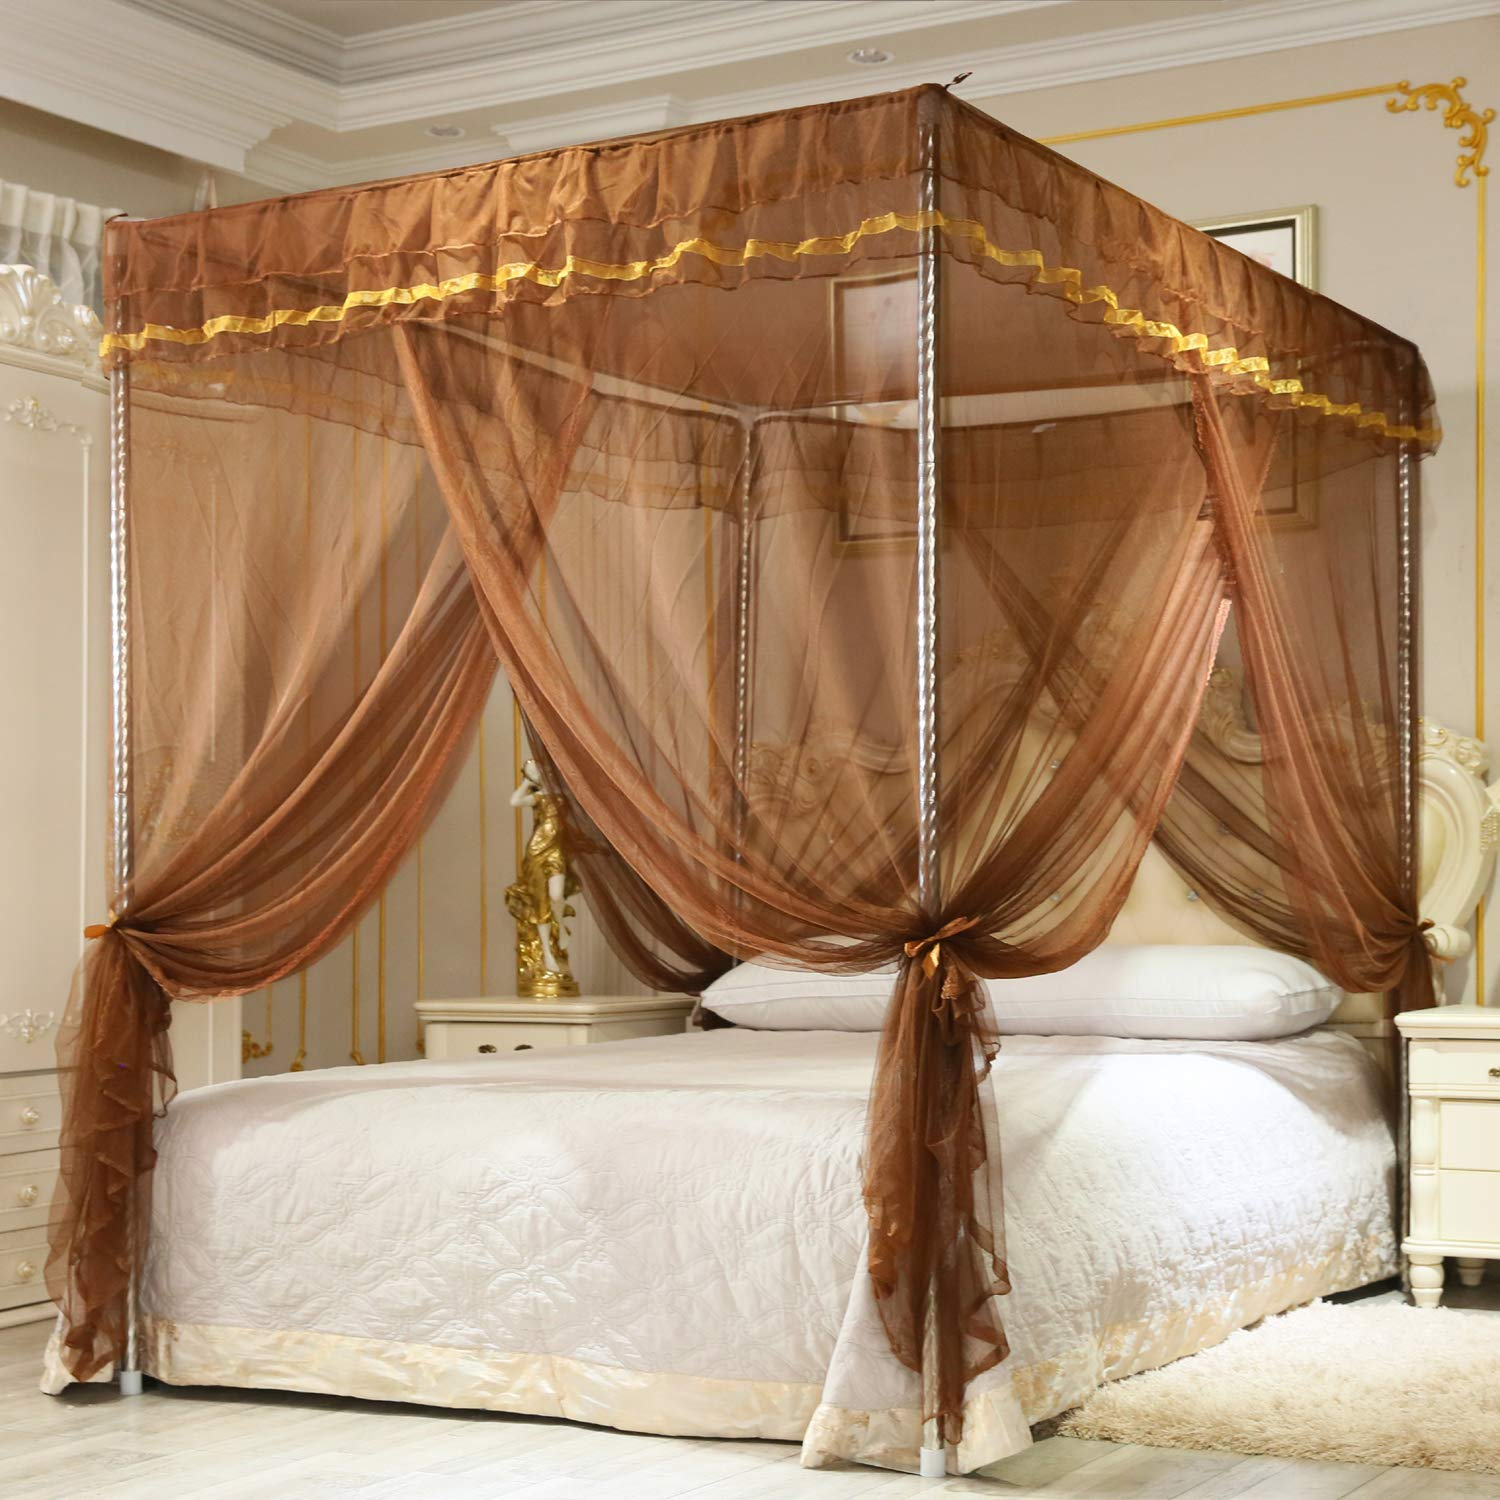 Nattey Simple 4 Corners Post Canopy Bed Curtain for Girls Boys & Adults Gift - 4 Opening - Bedroom Decoration (California King, Brown)